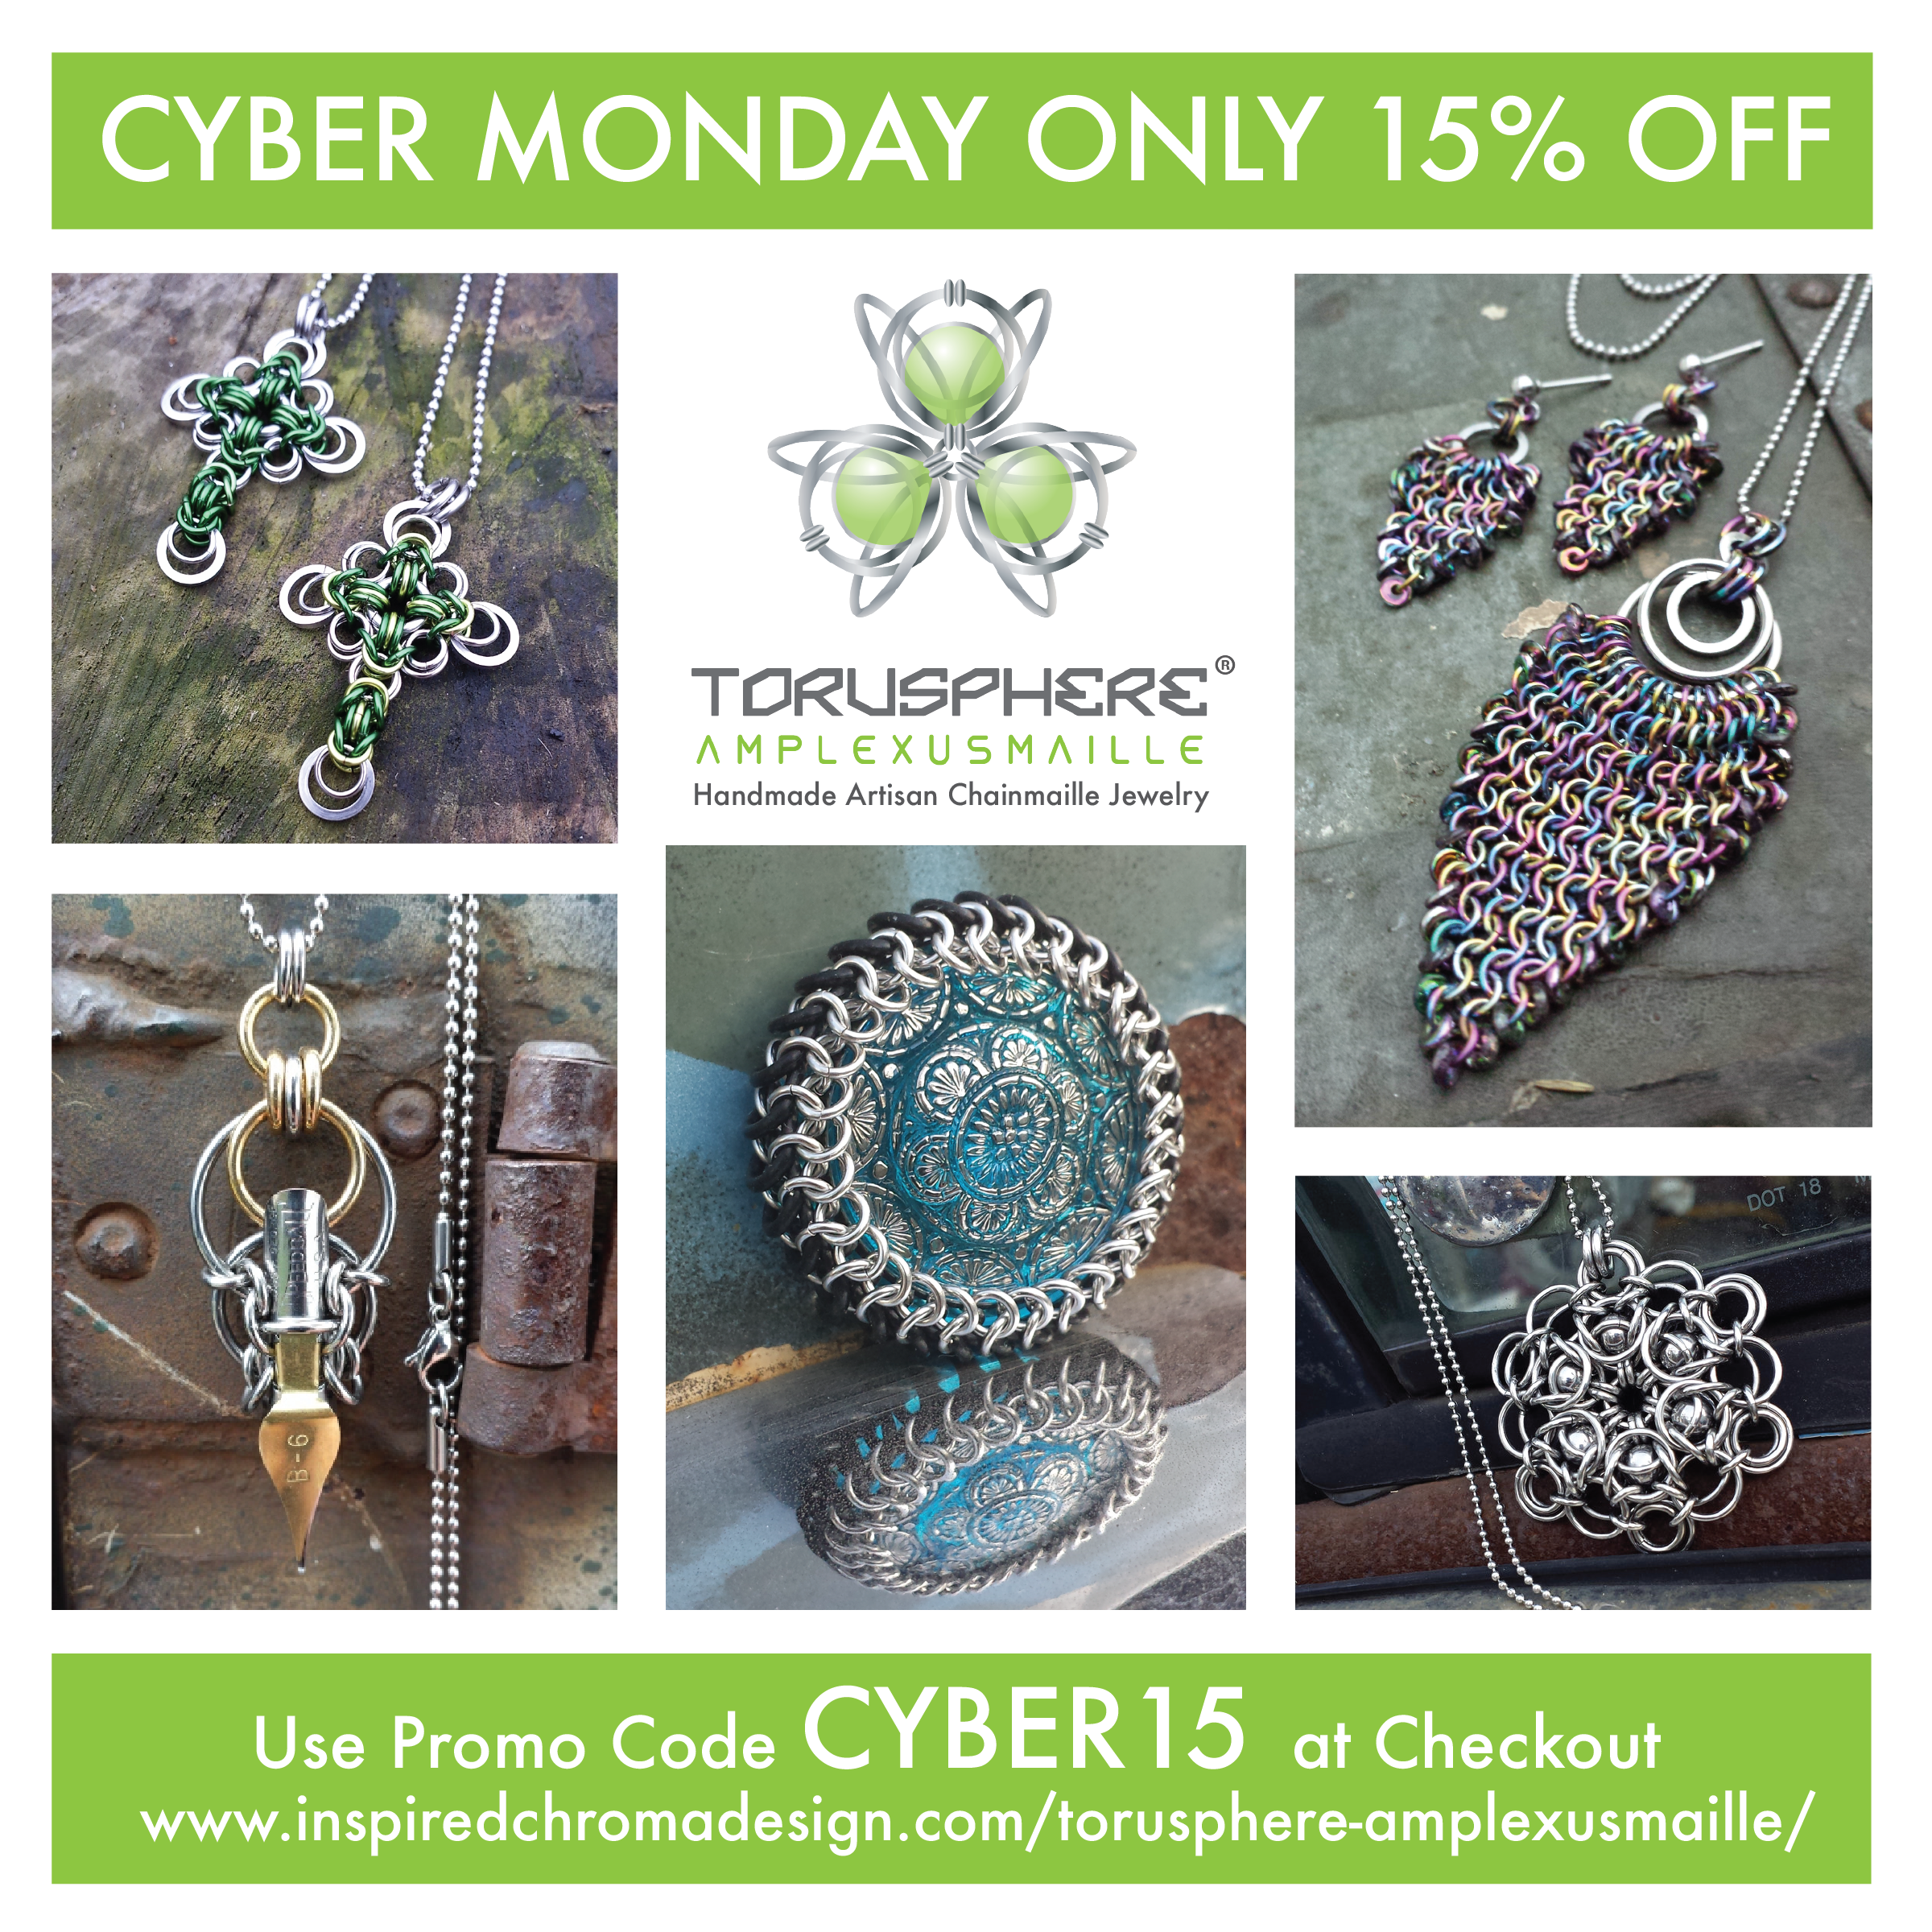 Best Discount of the Year! 15% off your purchase this Cyber Monday only! Choose from a selection of beautiful, artisan jewelry designed and hand made with heart.